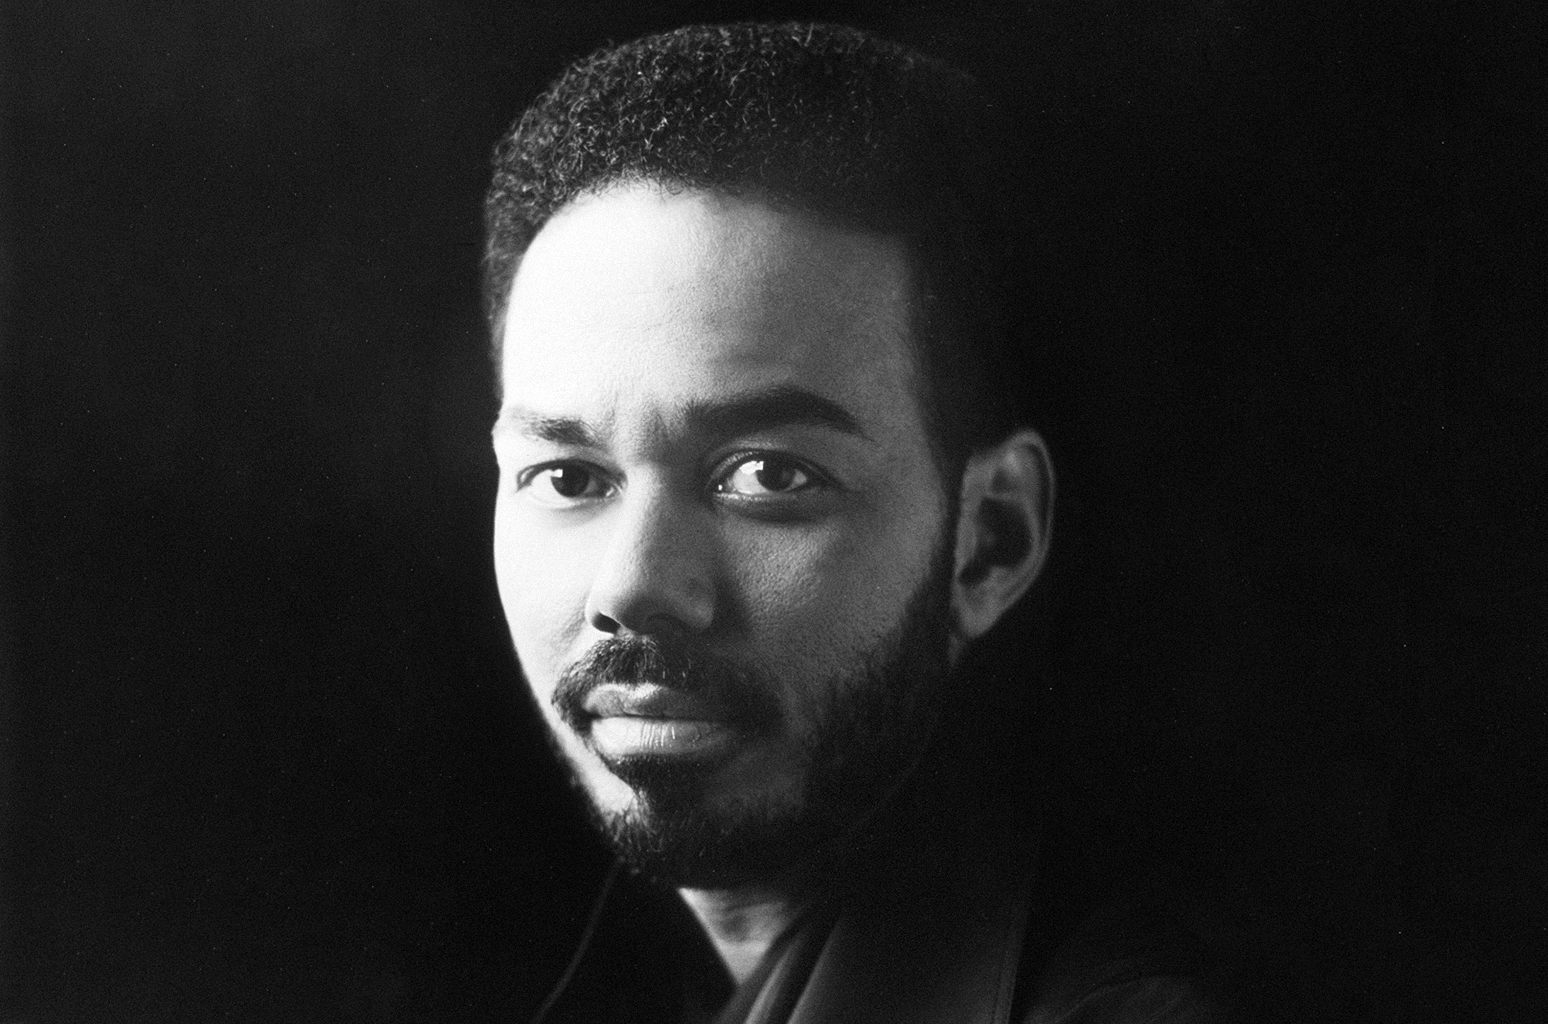 R.I.P James Ingram as the soul singer dies of cancer